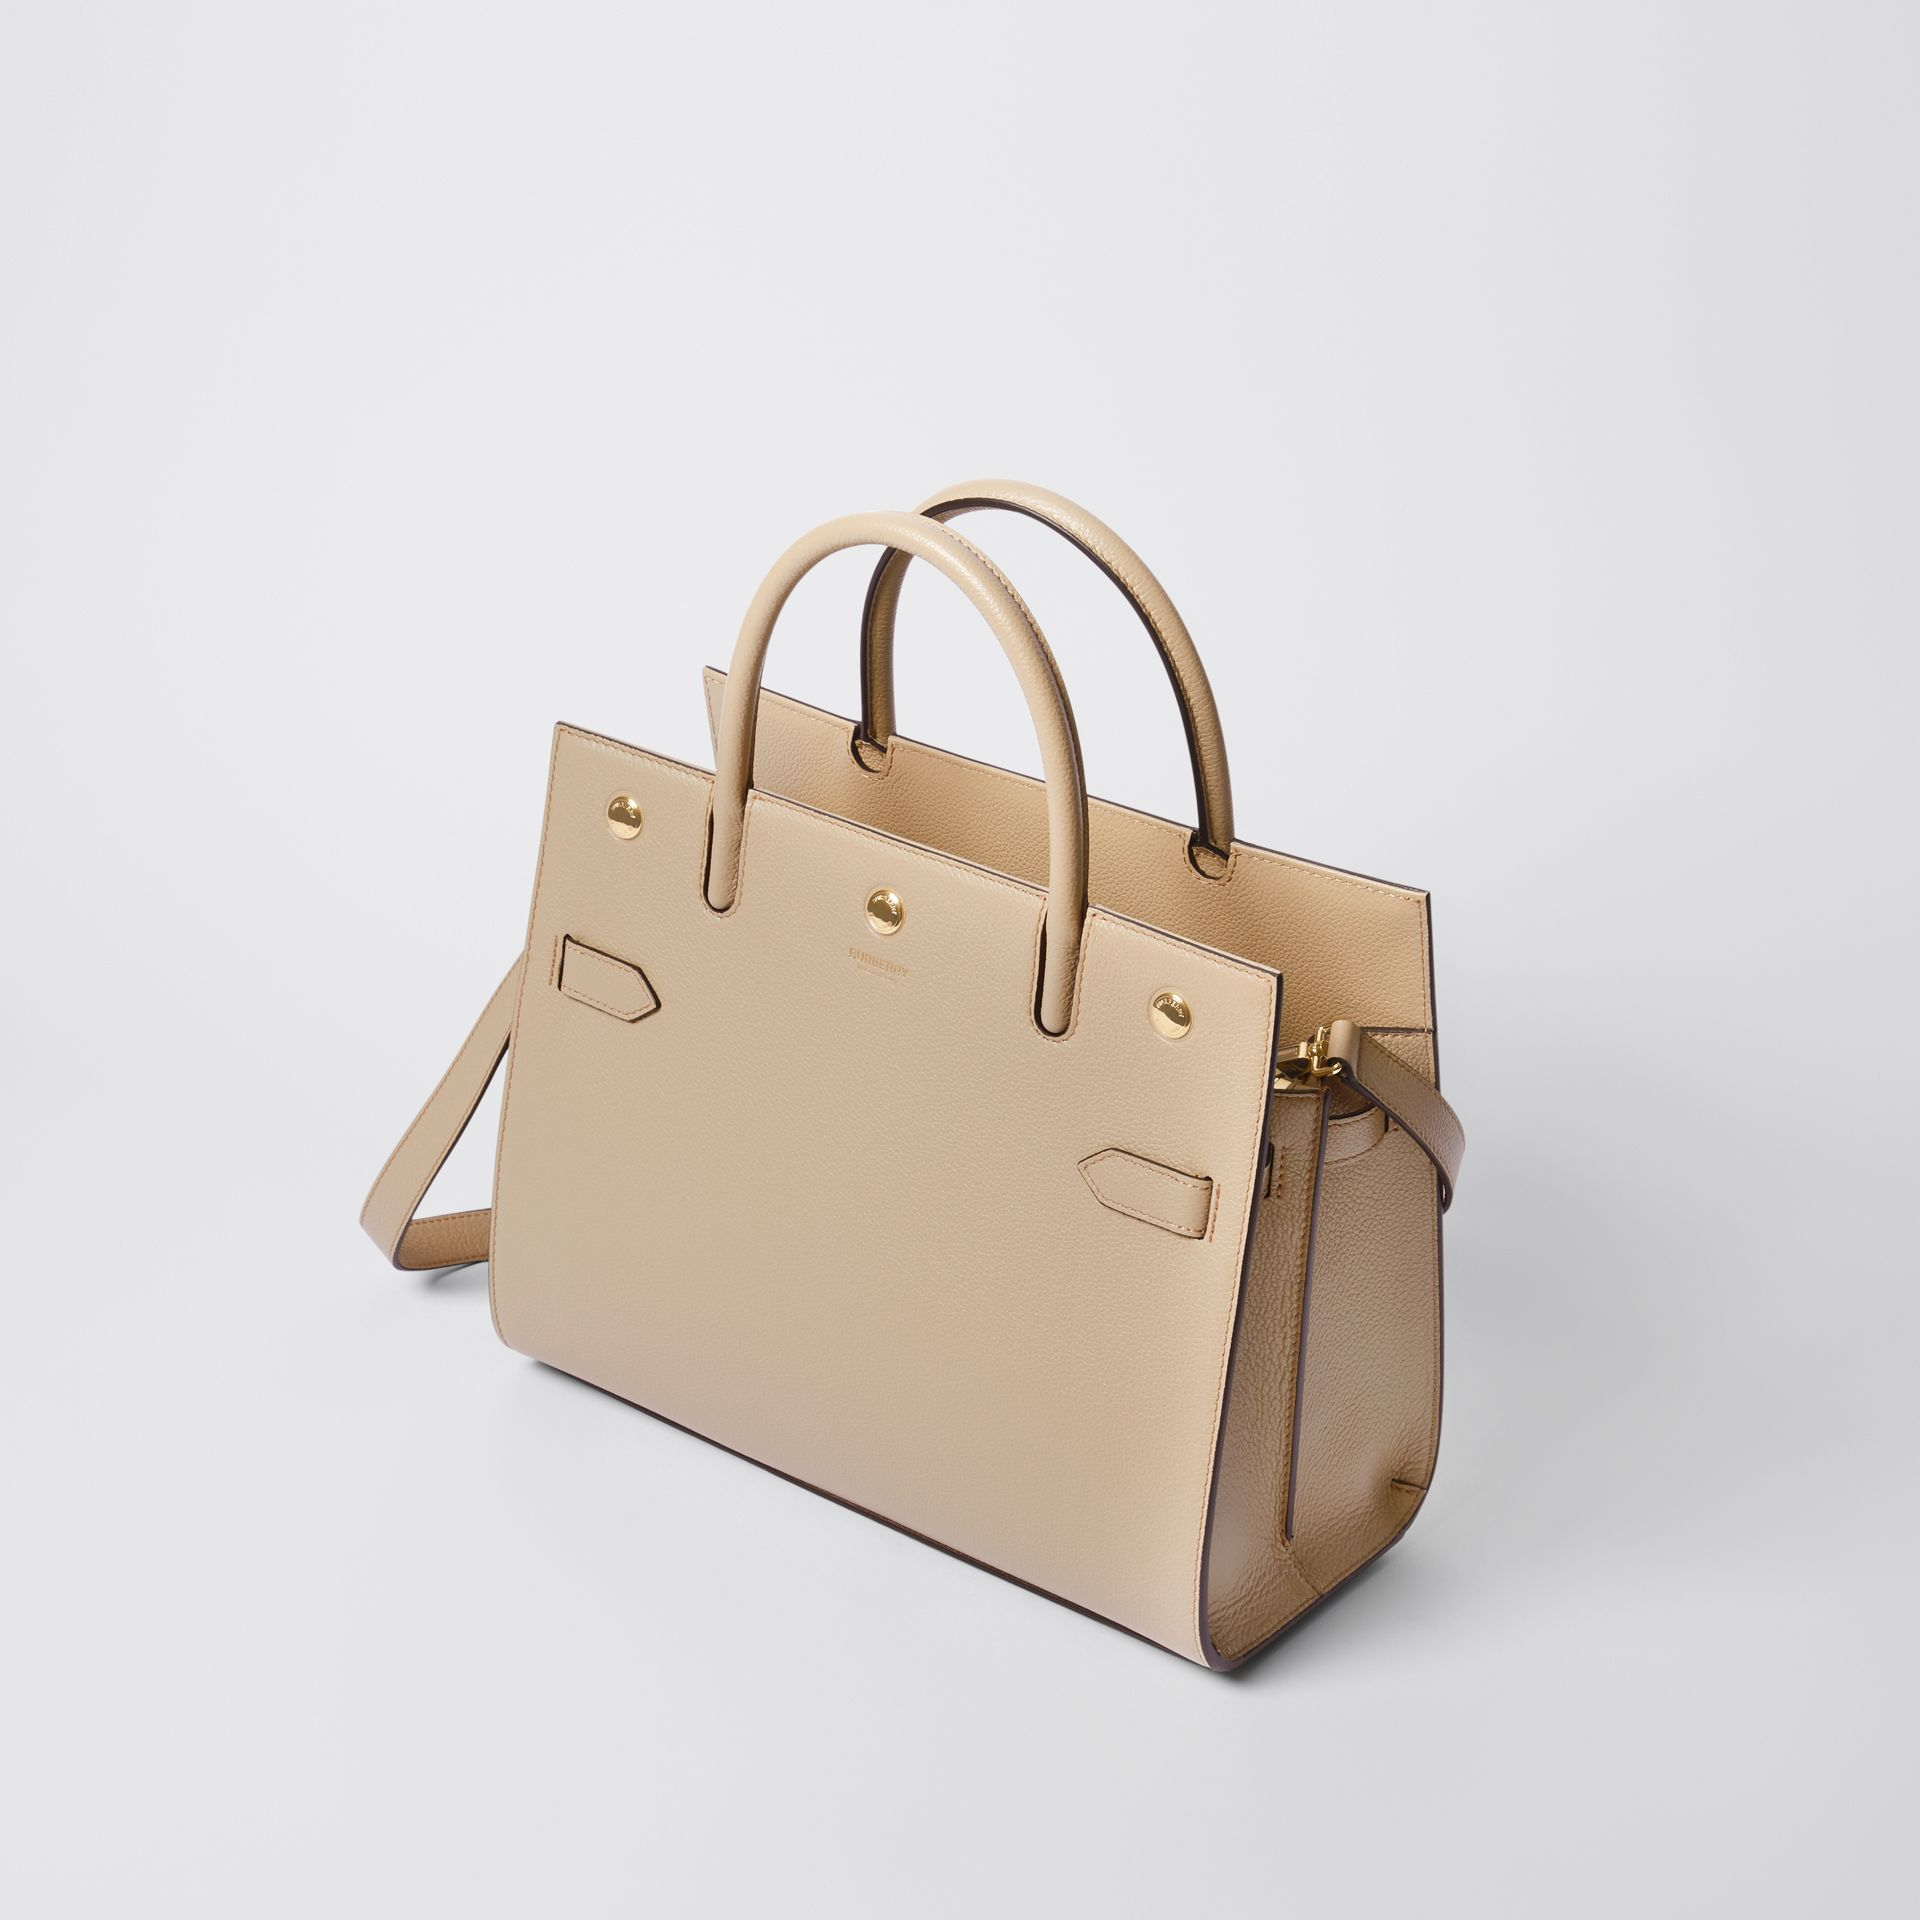 Small Leather Two-handle Title Bag in Light Beige - Women | Burberry United Kingdom - gallery image 2